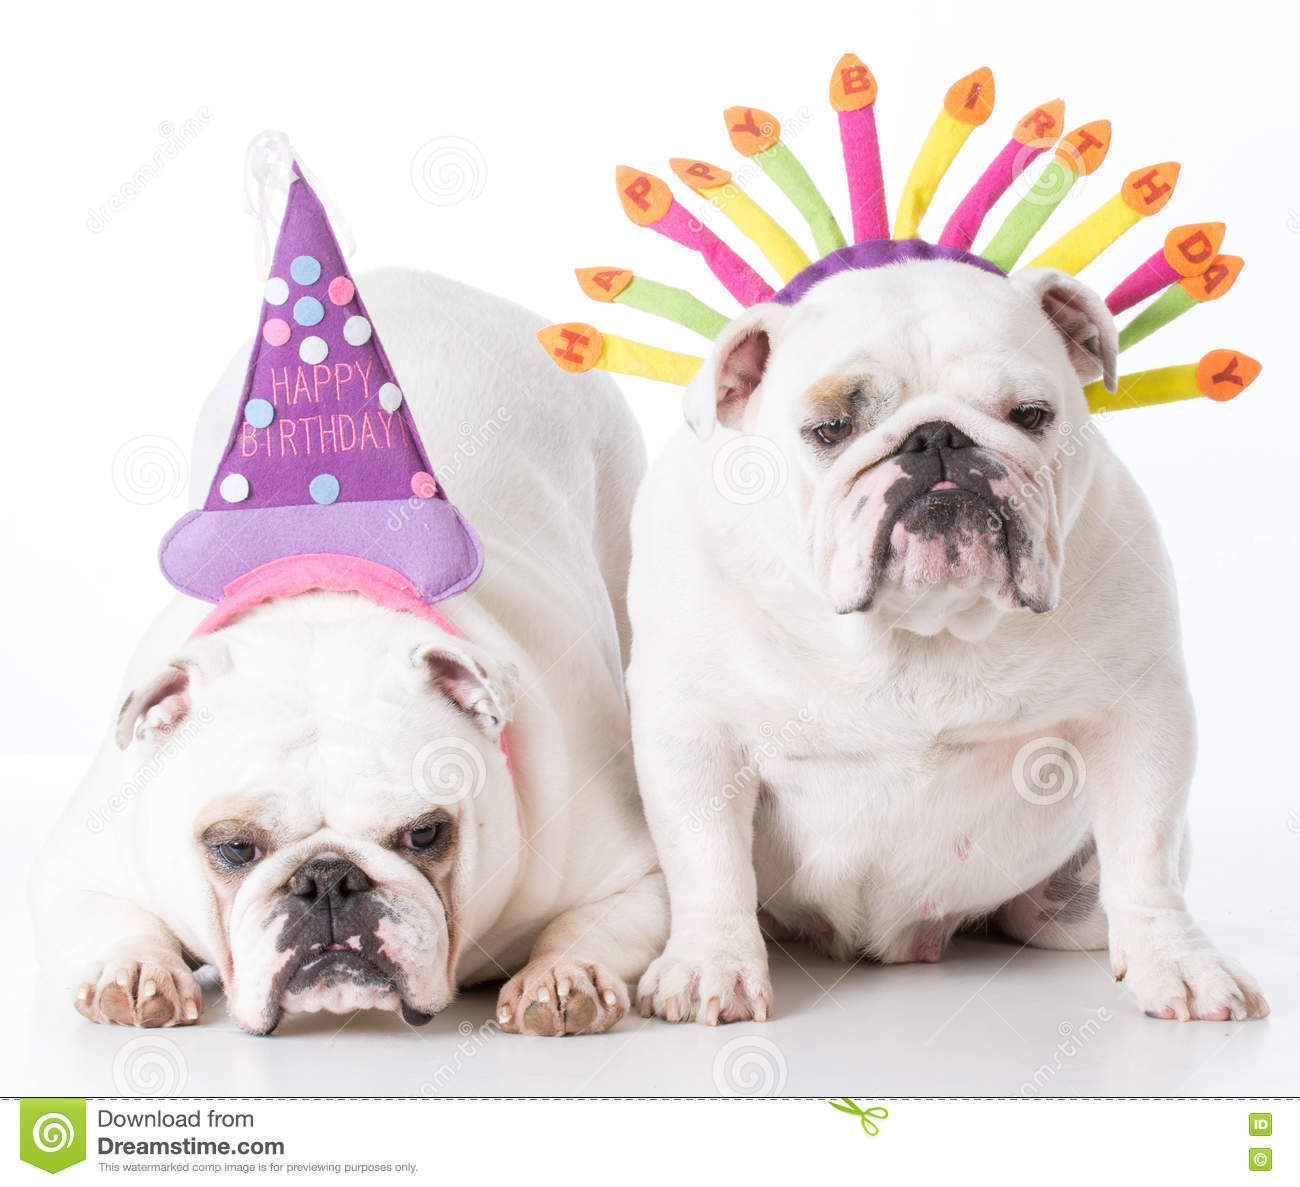 Two Birthday Dogs Stock Photo Image Of Sitting Adorable